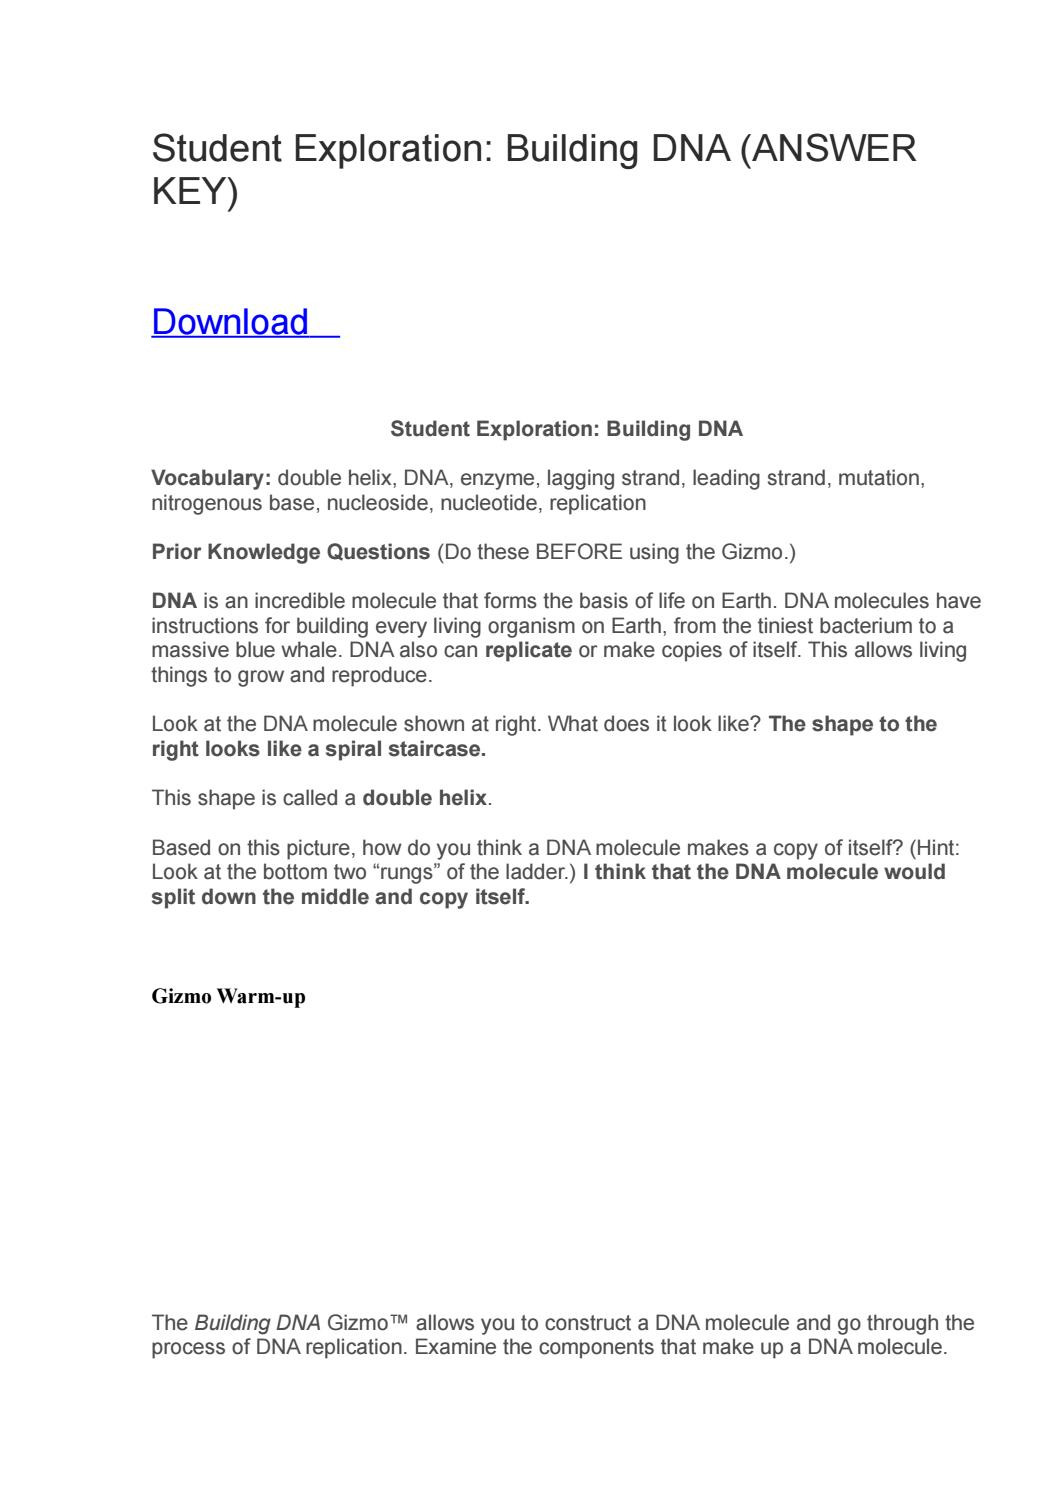 Dna Replication Worksheet Answers Student Exploration Building Dna Answer Key by Dedfsf